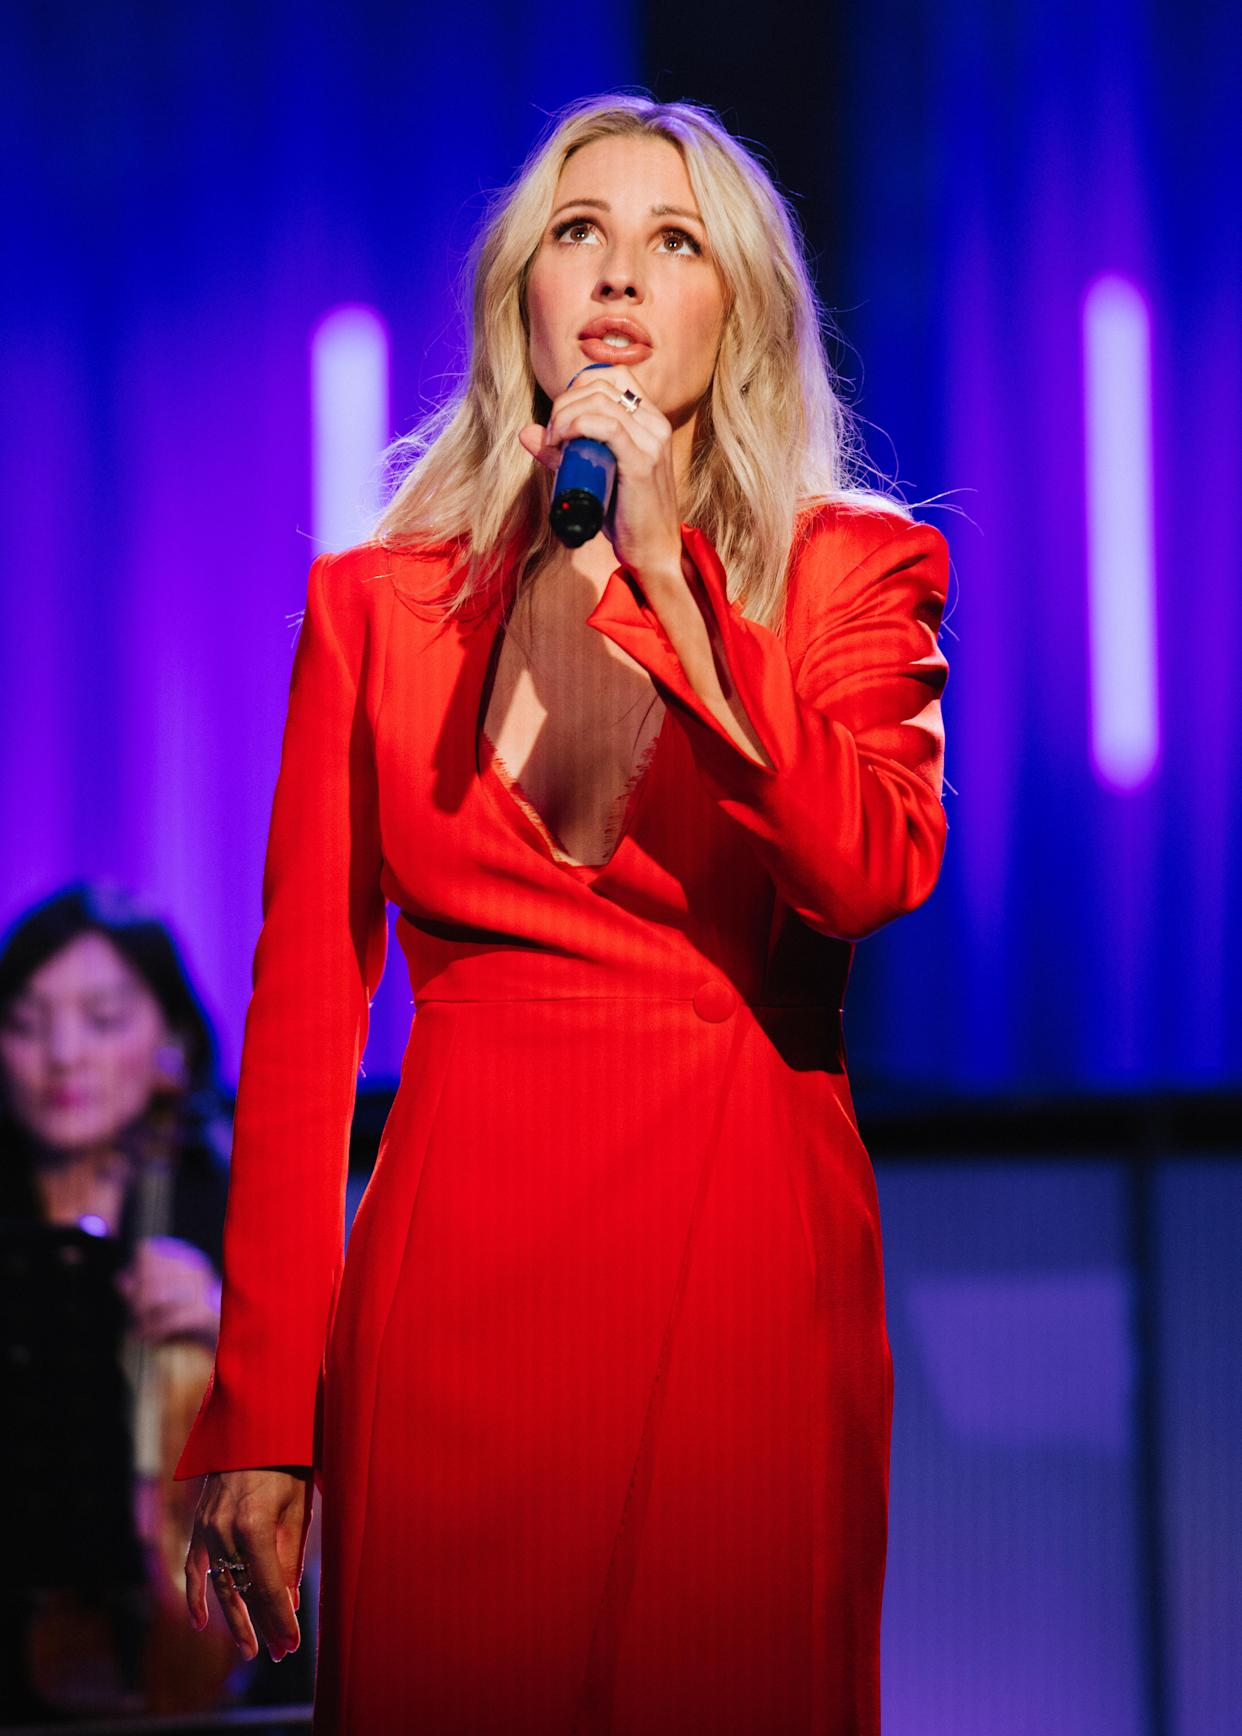 Ellie Goulding performs at The V&A on August 26, 2020 in London, England. The performance was live streamed for ticket holders during the COVID-19 pandemic. (Photo by Jennifer McCord via Getty Images)